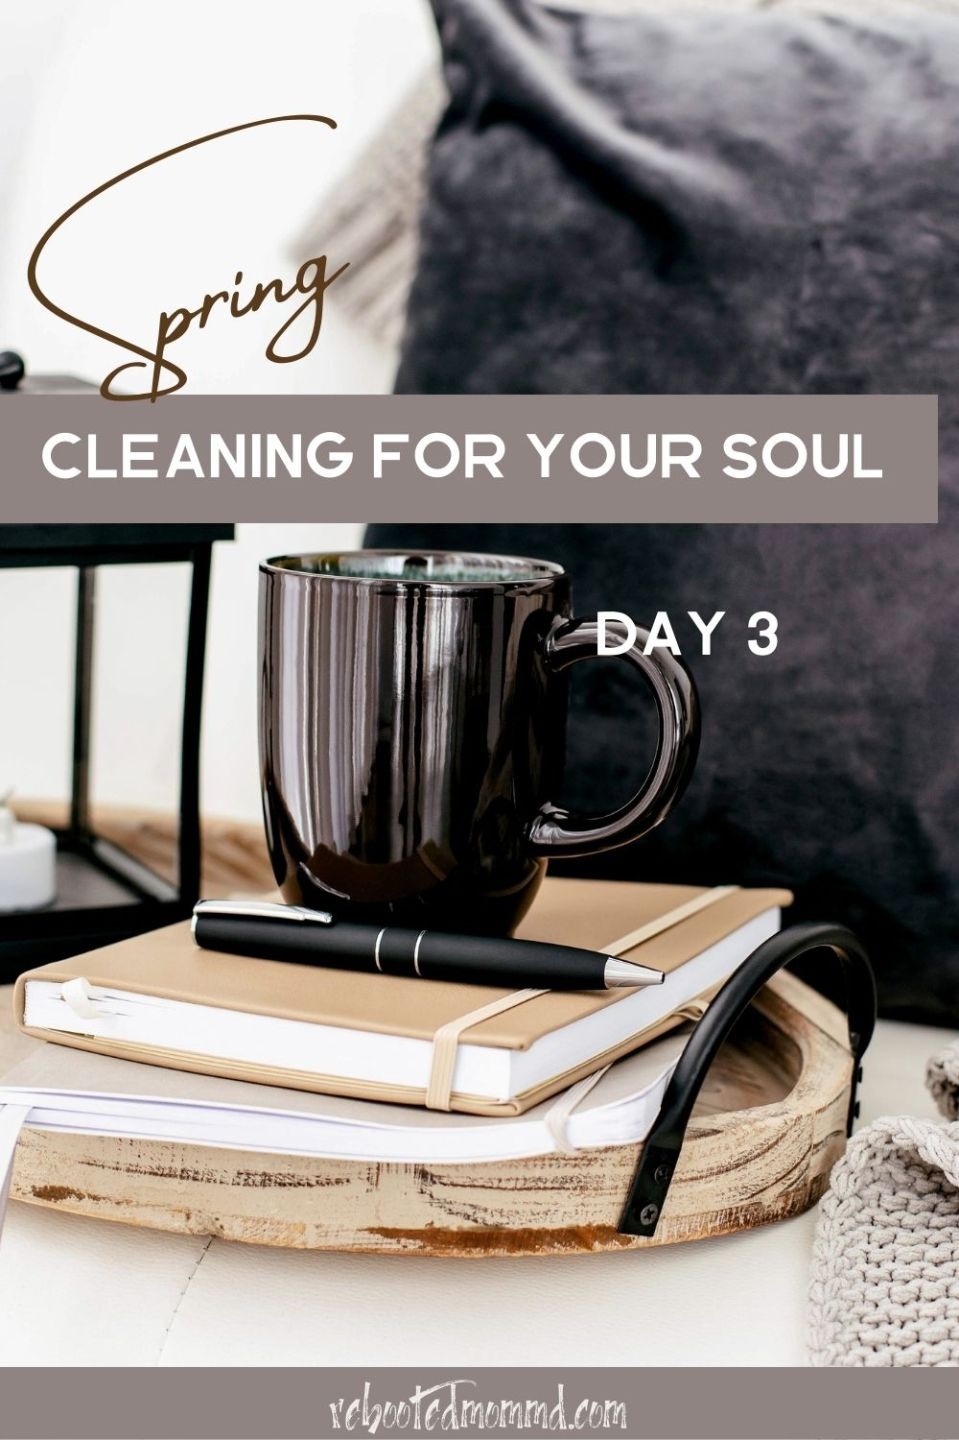 Spring Cleaning for Your Soul, Day 3: Clear Away Worries